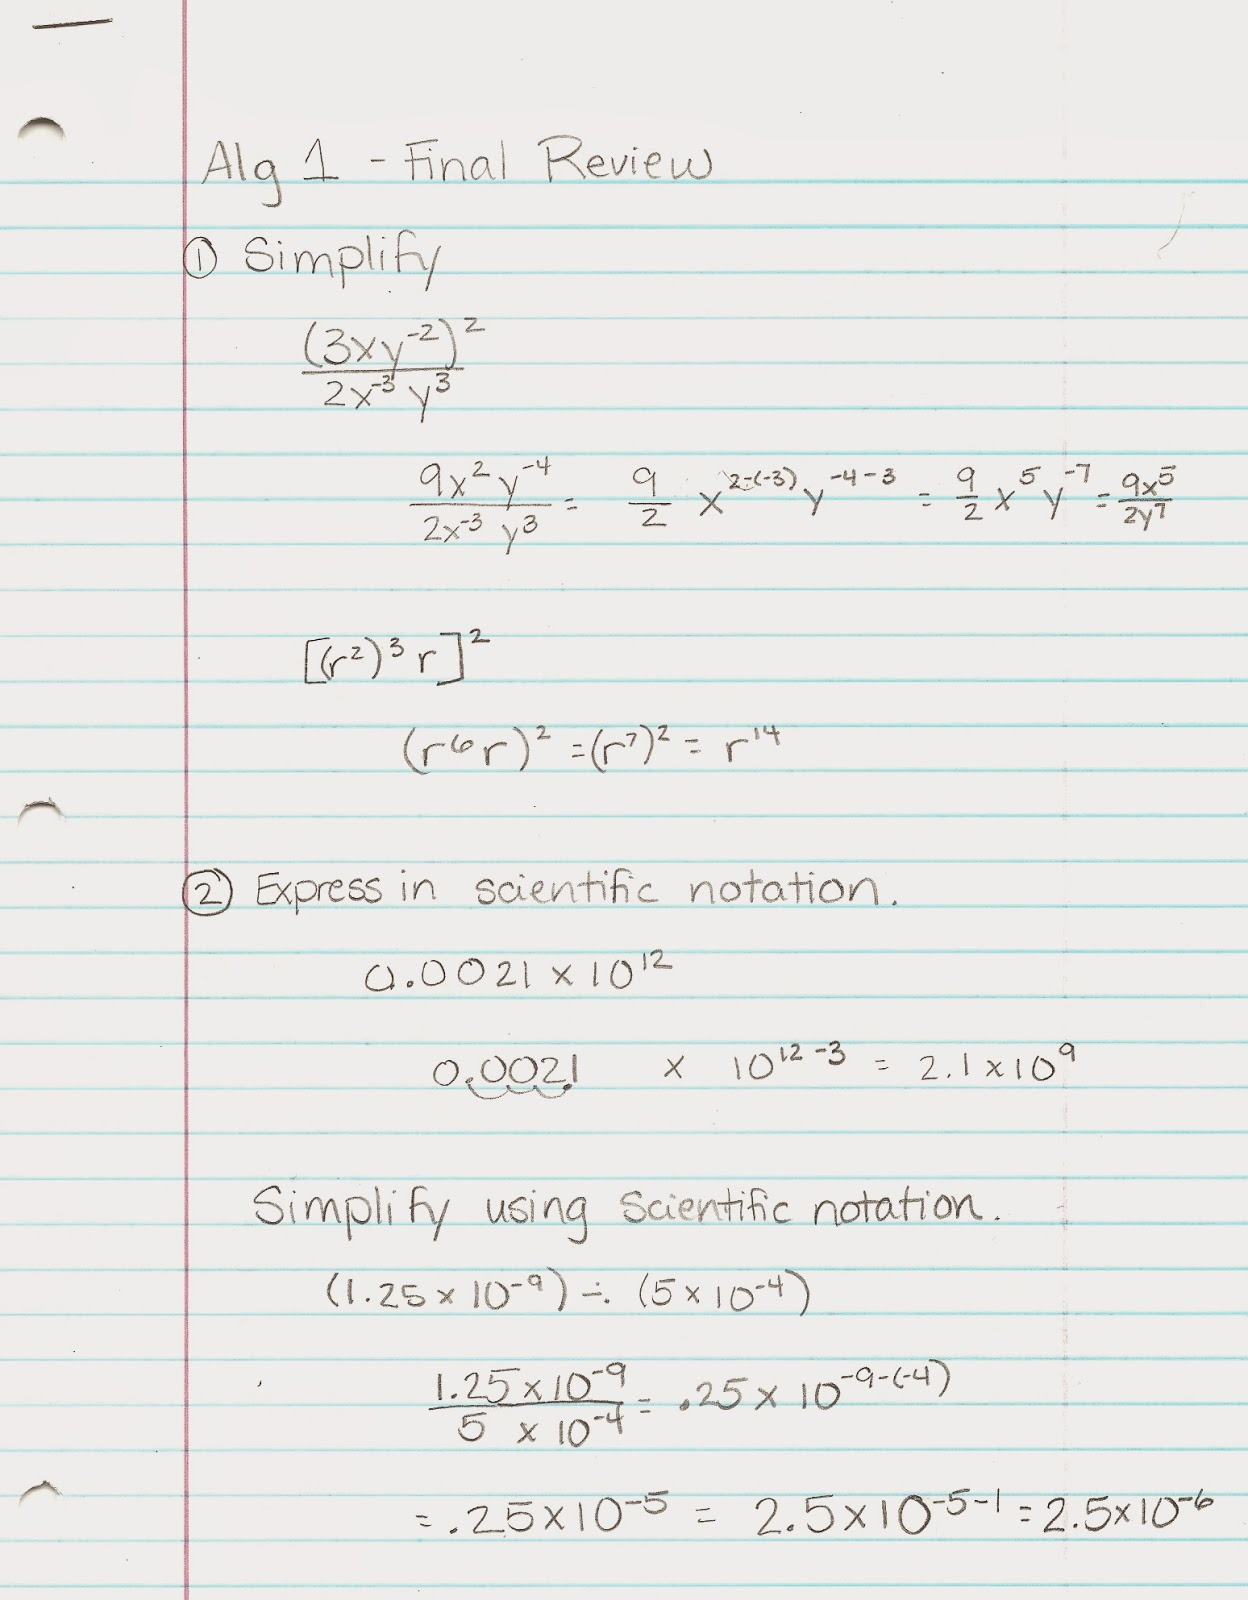 busman notes unit 3 aos 3 Summary notes-unit 3 aos 3 external stability by the writ3r in types  school  work, vce economics, and units 3/4.